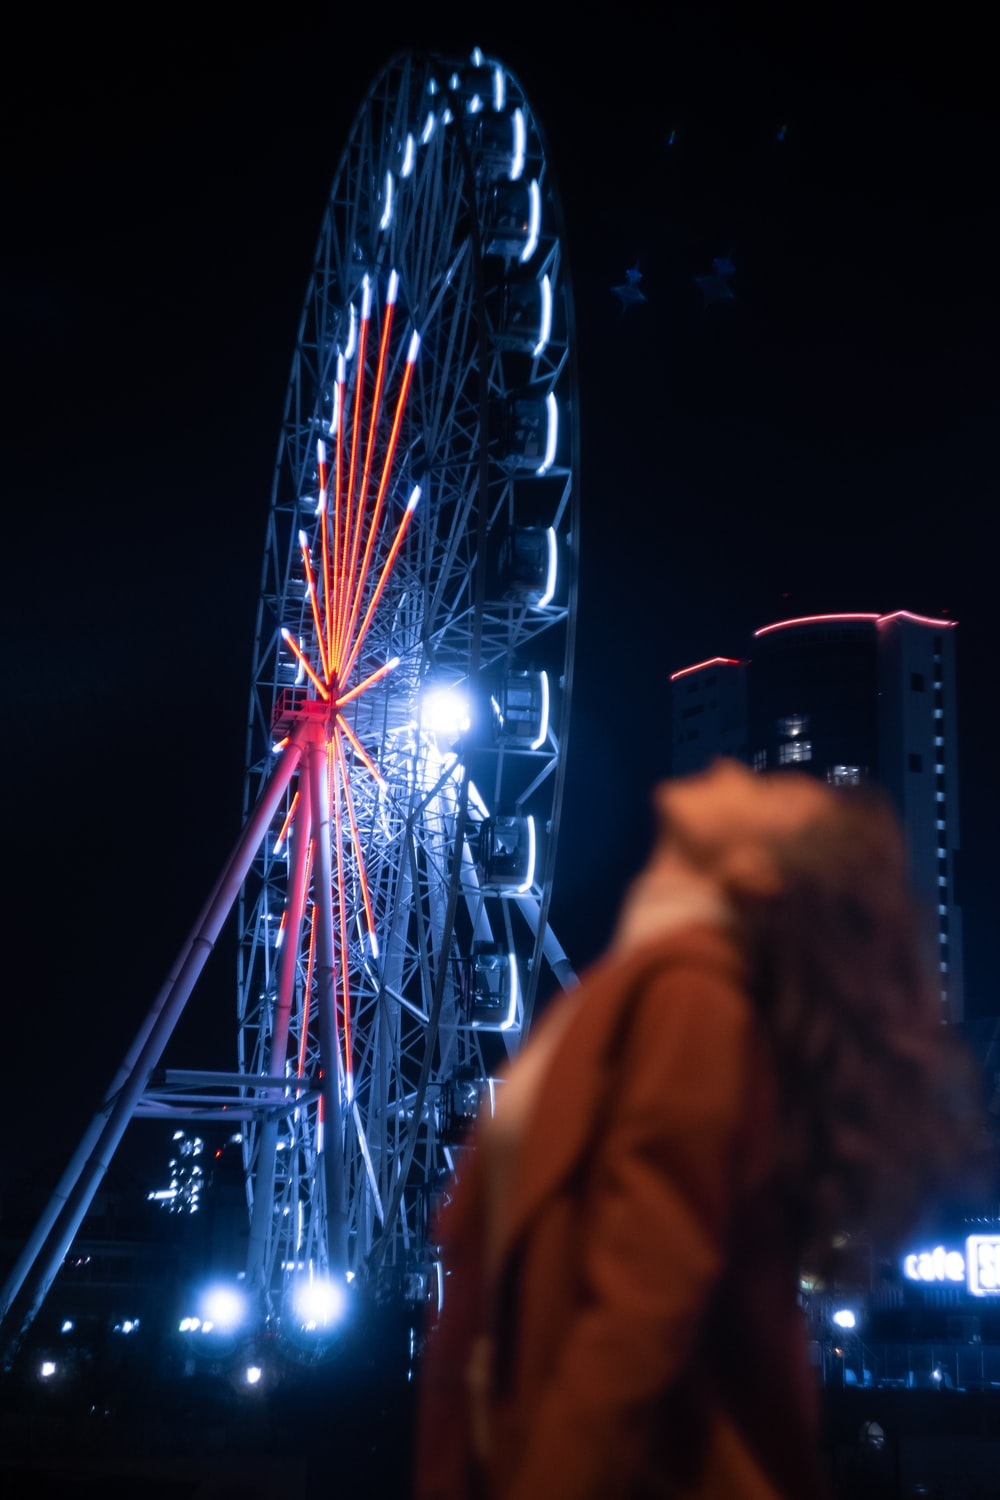 woman in yellow jacket standing near ferris wheel during night time